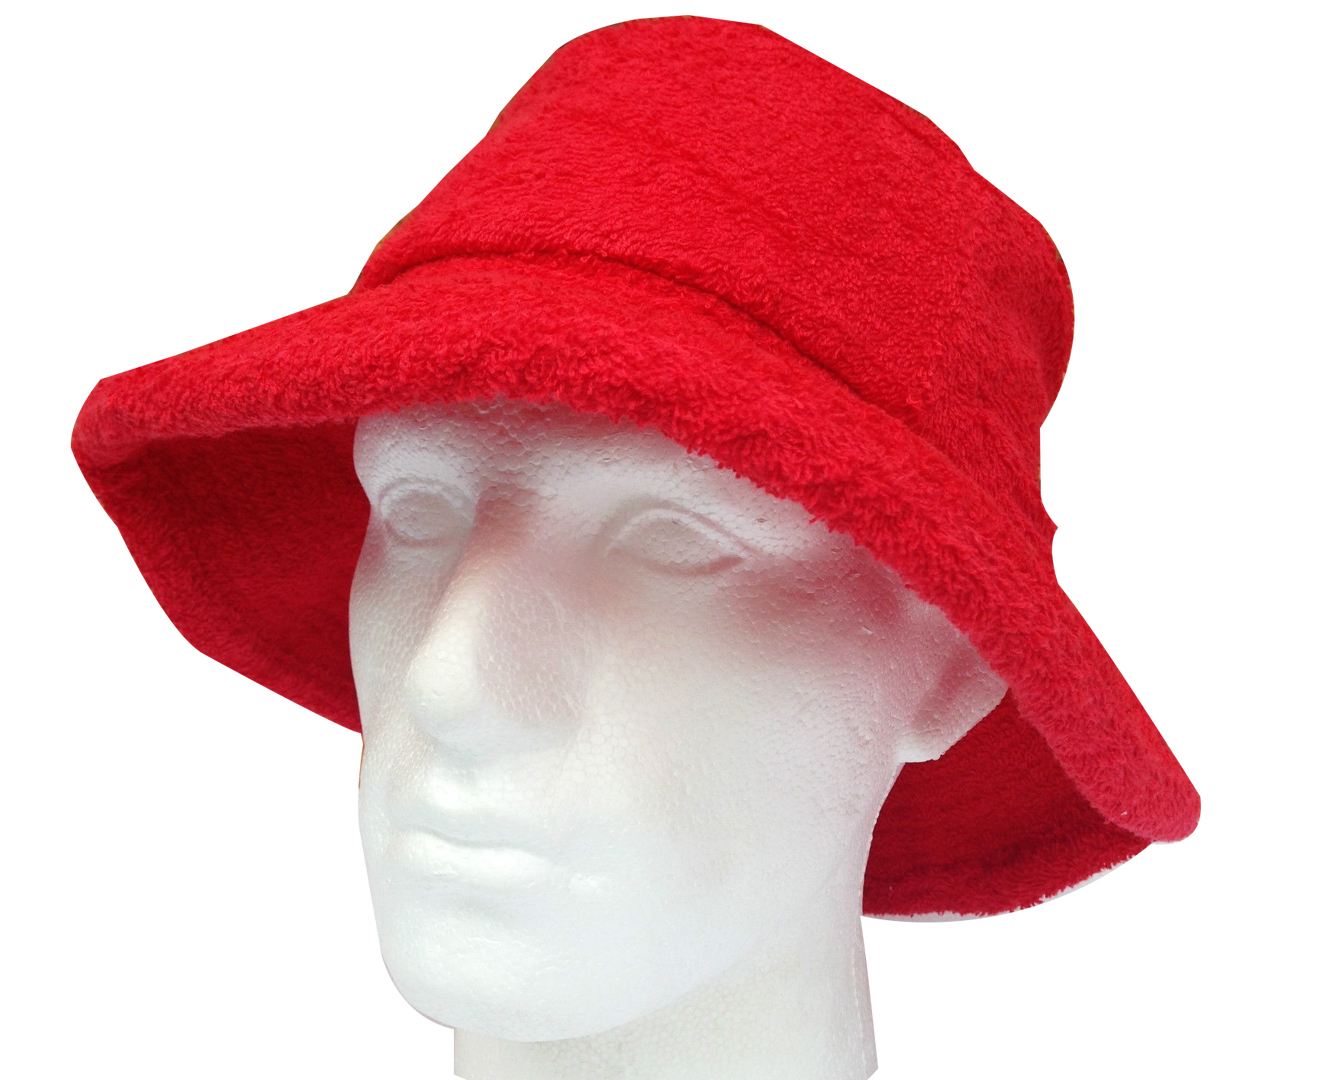 Terry-Towelling-BUCKET-HAT-Daggy-Fishing-Camping-Lad-Cap-Retro-New-100-COTTON thumbnail 74